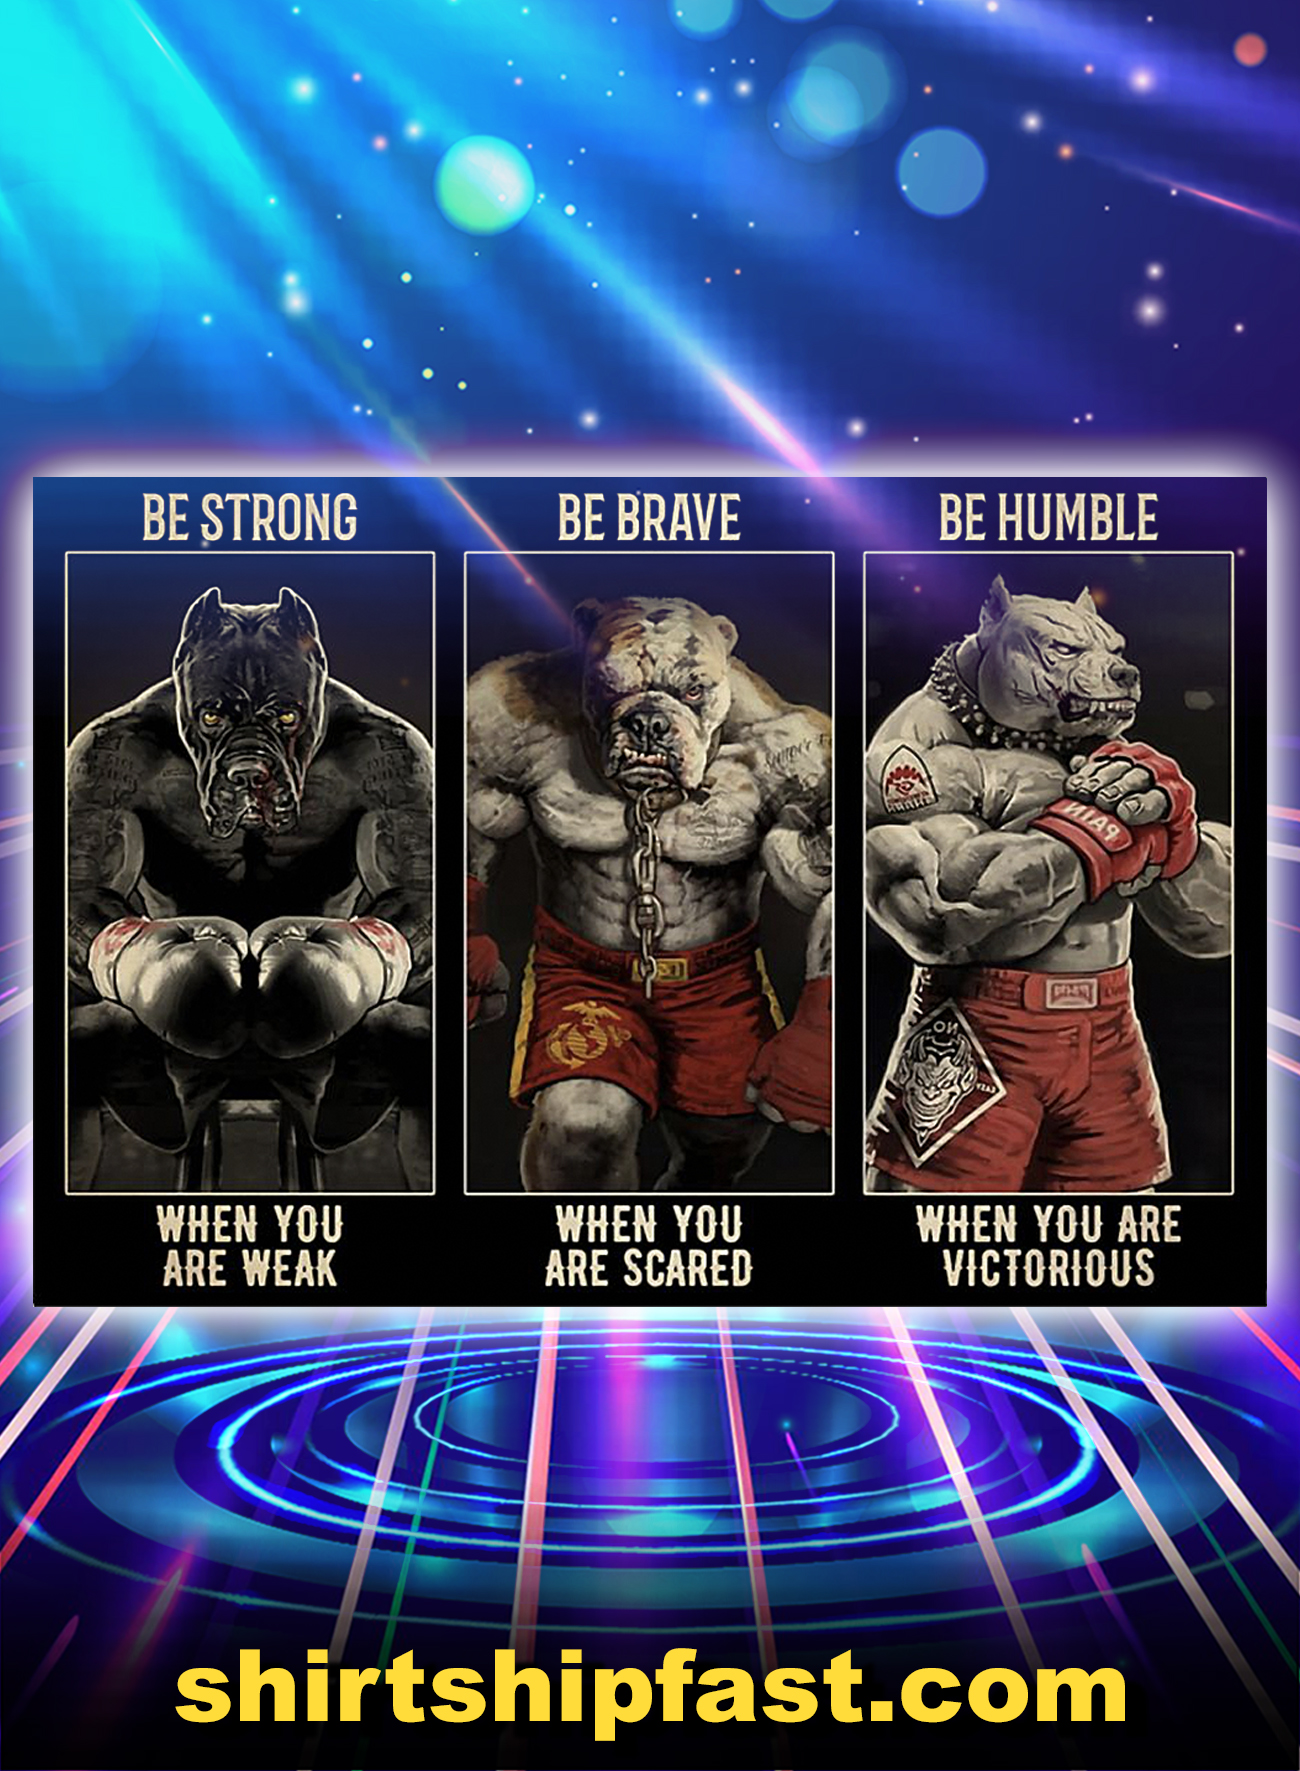 Pitbull boxing be strong be brave be humble poster - A4